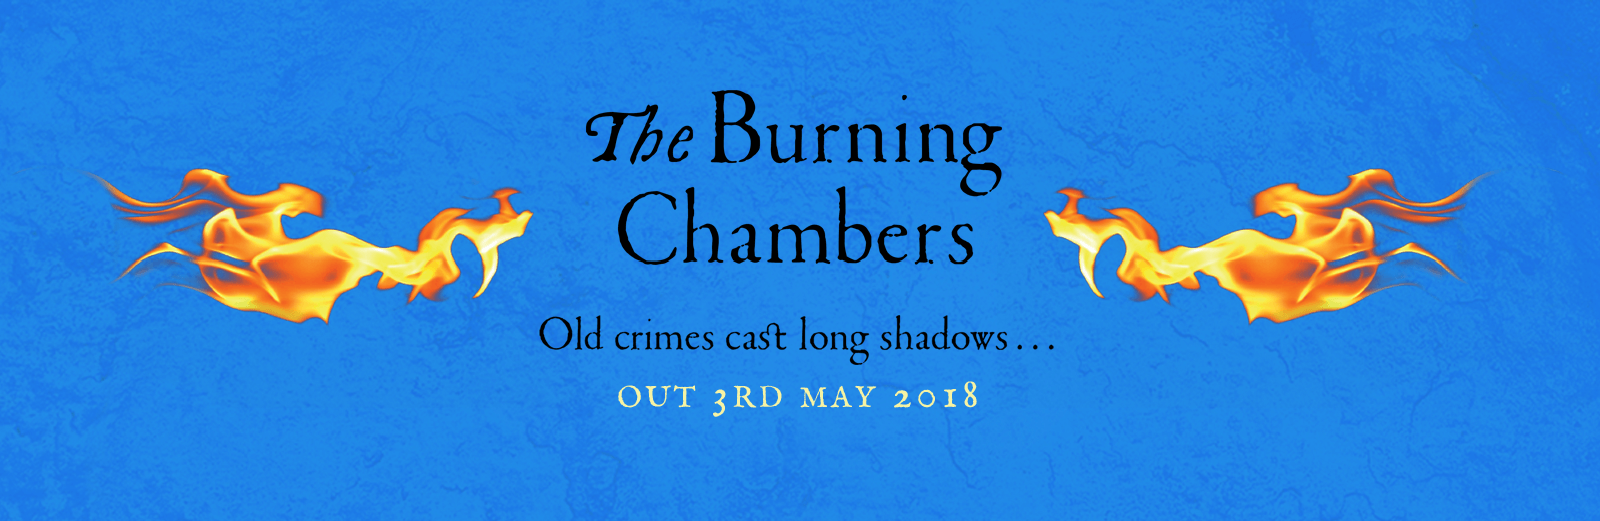 Burning Chambers Billboard Resize